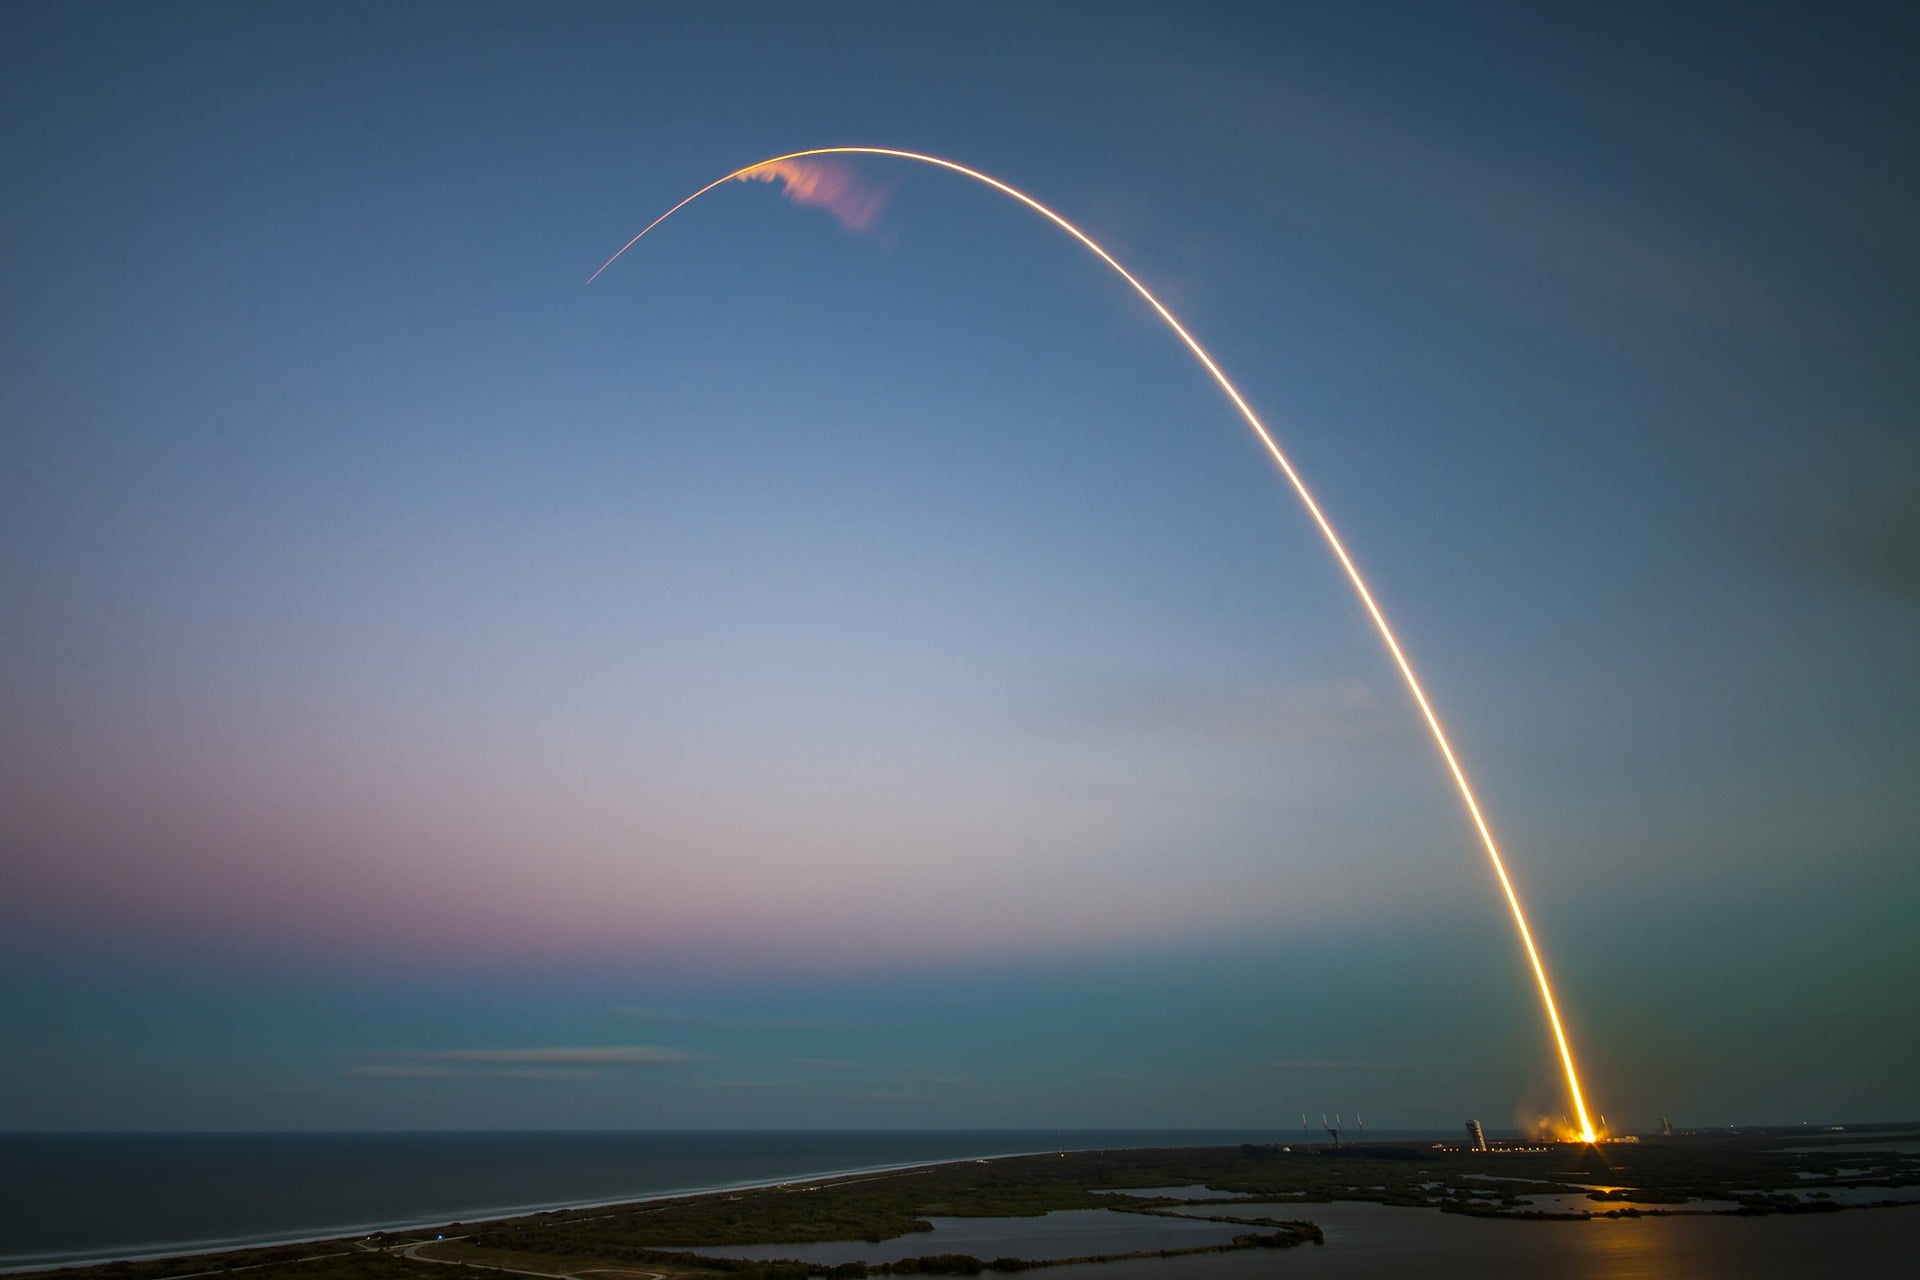 Bitcoin Closes On $11k as Fourth Parabolic Phase Begins, $100k Target Possible